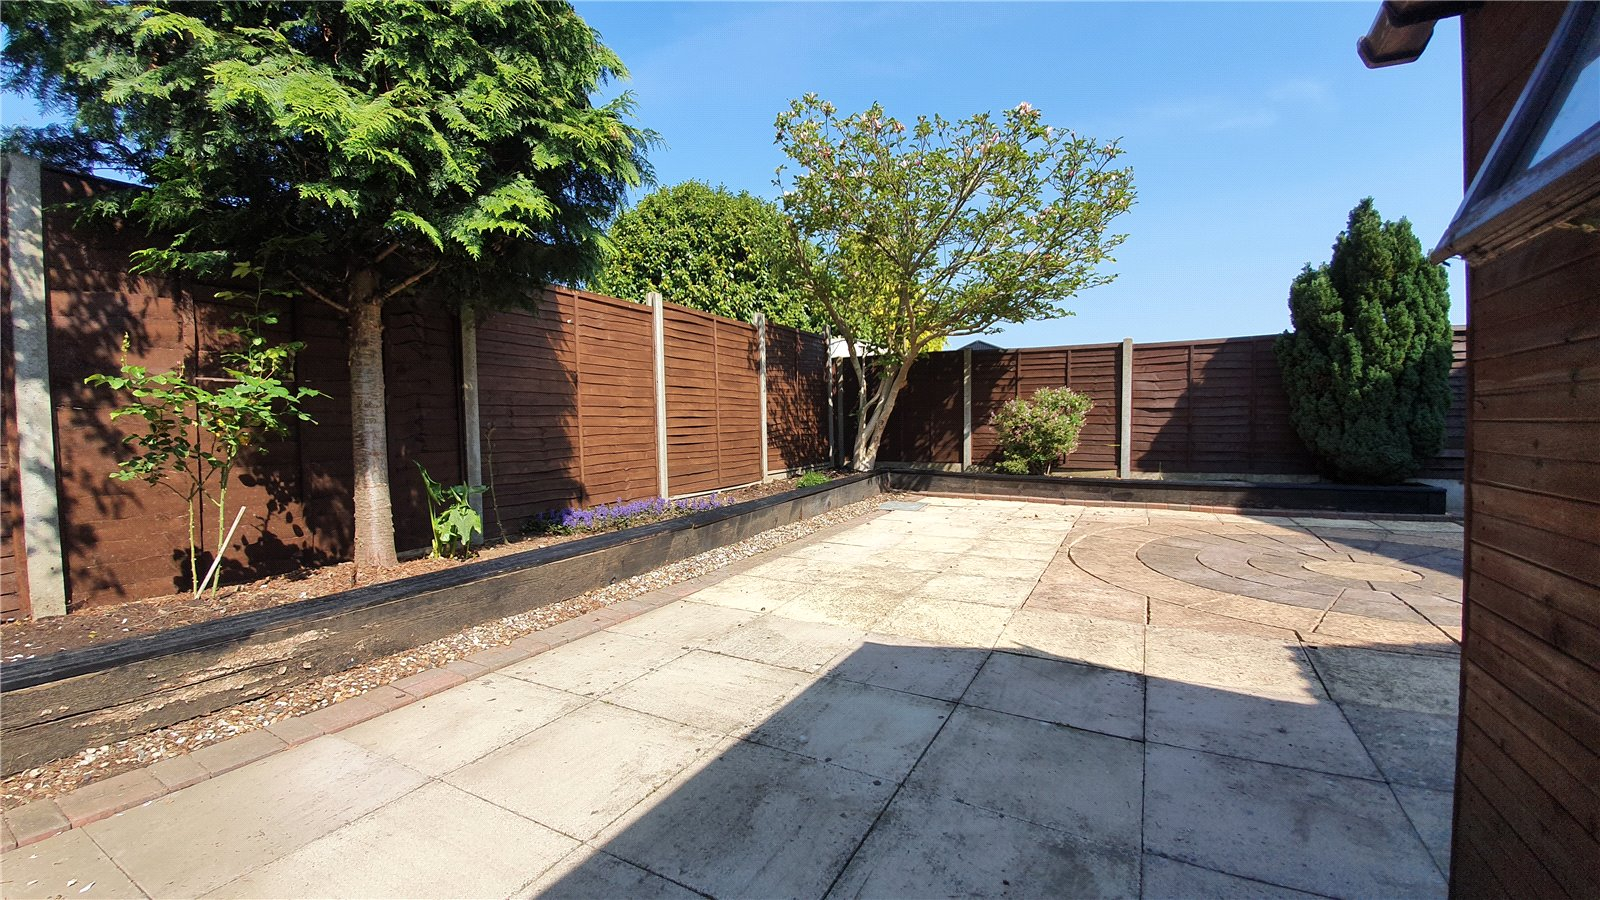 3 bed house for sale in Farm Close, Wyboston 9